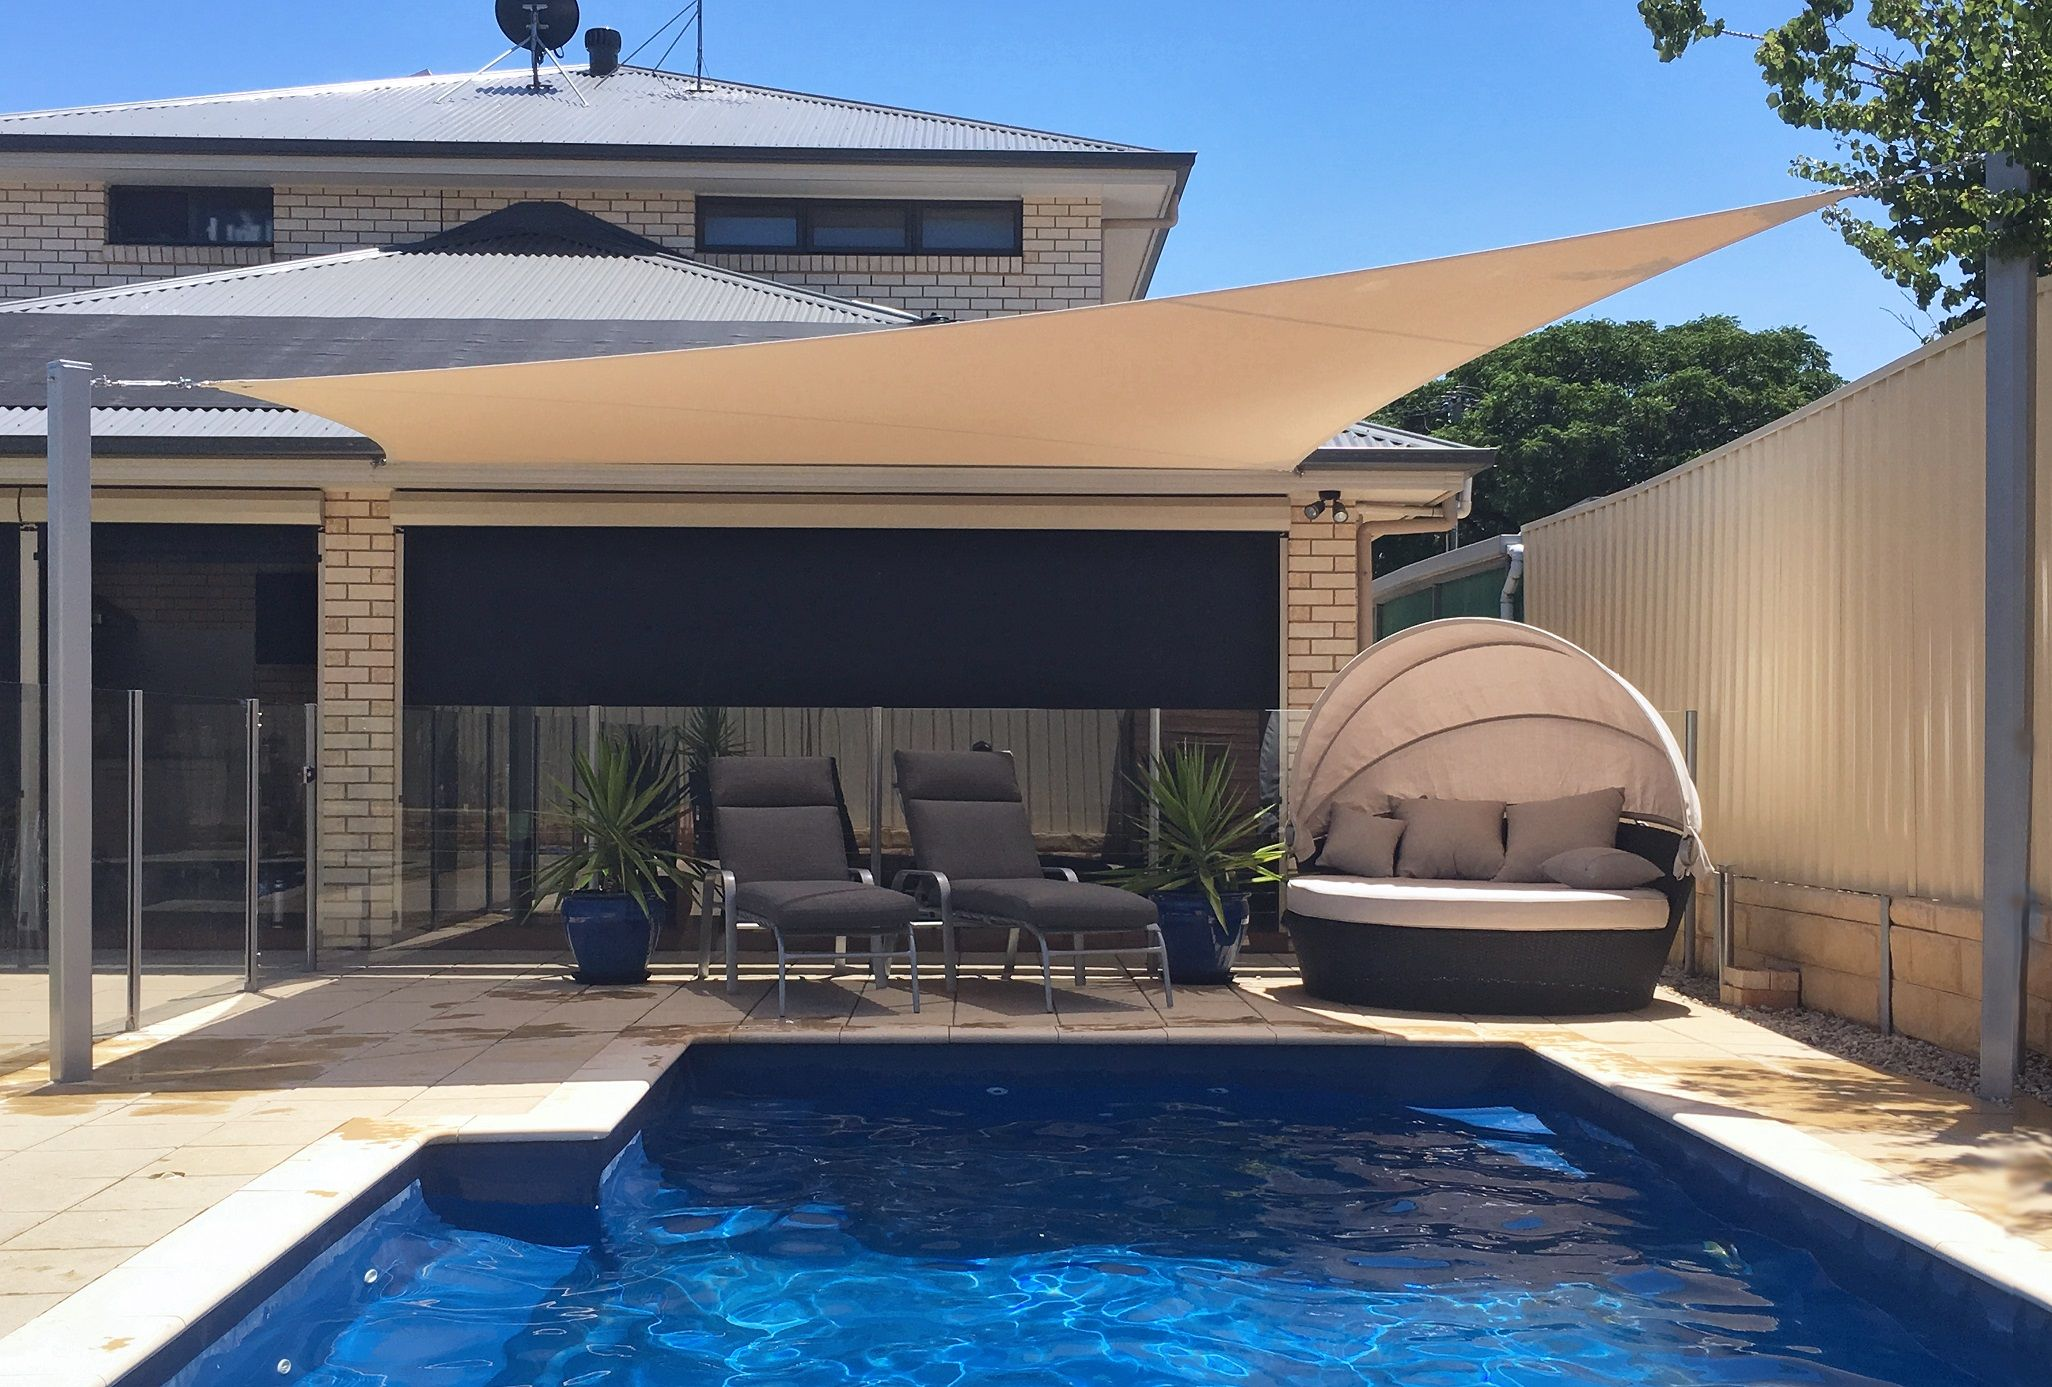 Shade Ideas - Shade Sails for Pools, Patios, Decks | Shadeform Sails ...